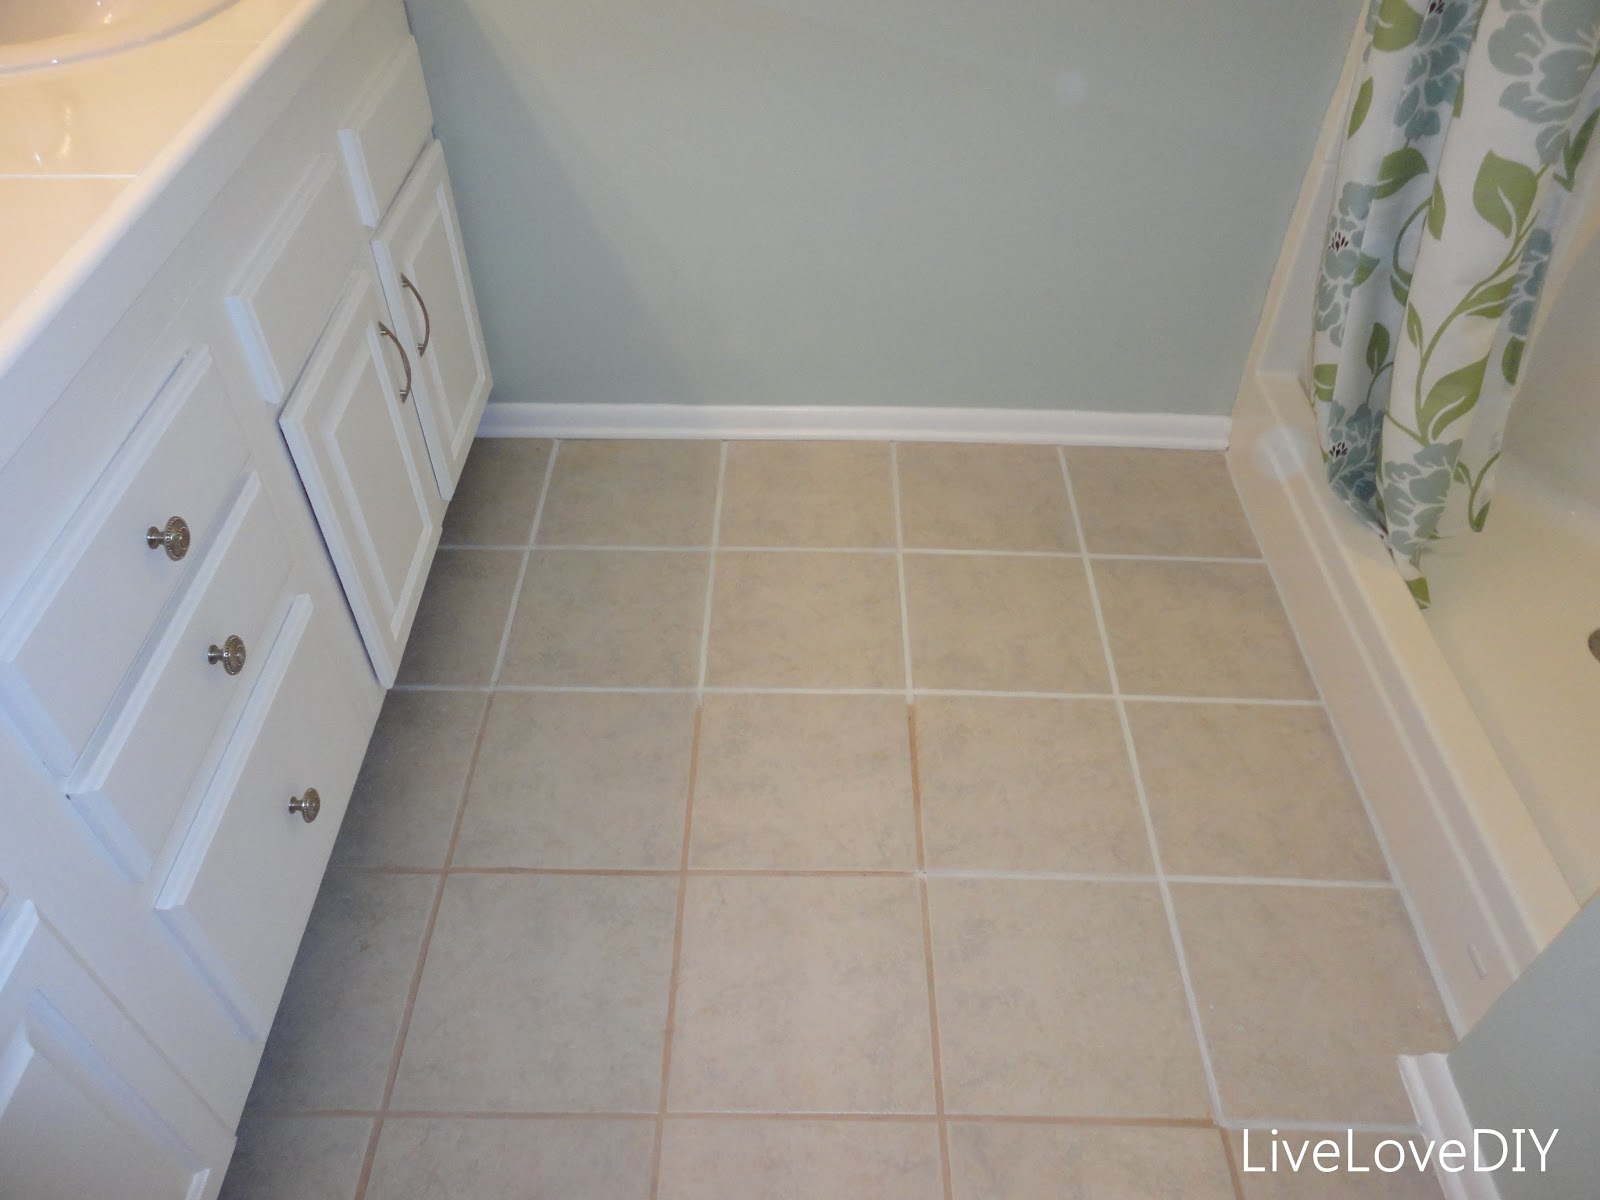 Livelovediy how to restore dirty tile grout to dailygadgetfo Image collections